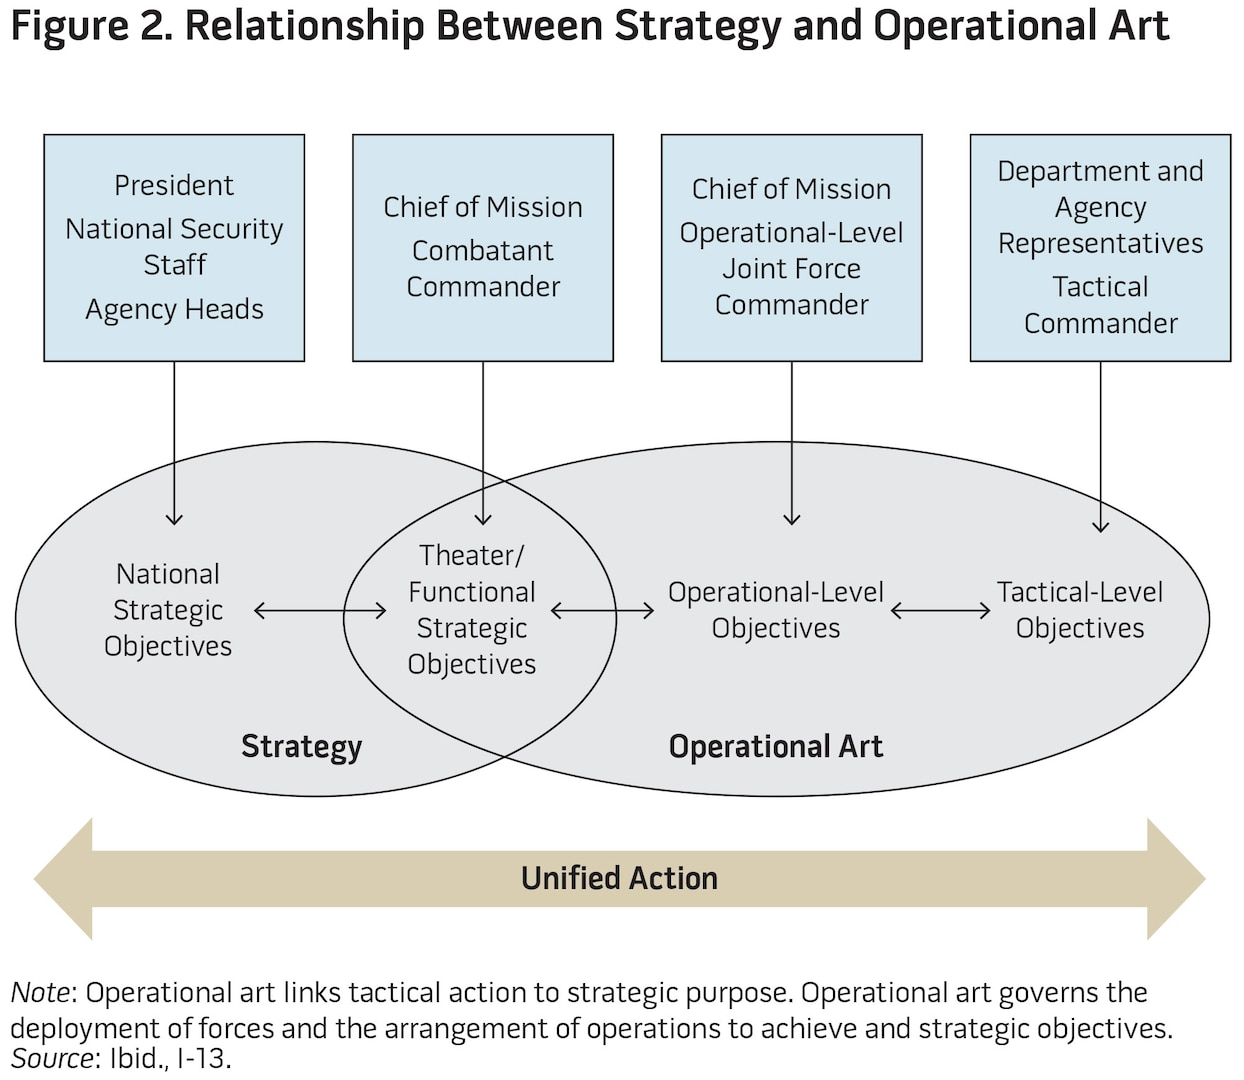 Figure 2. Relationship Between Strategy and Operational Art